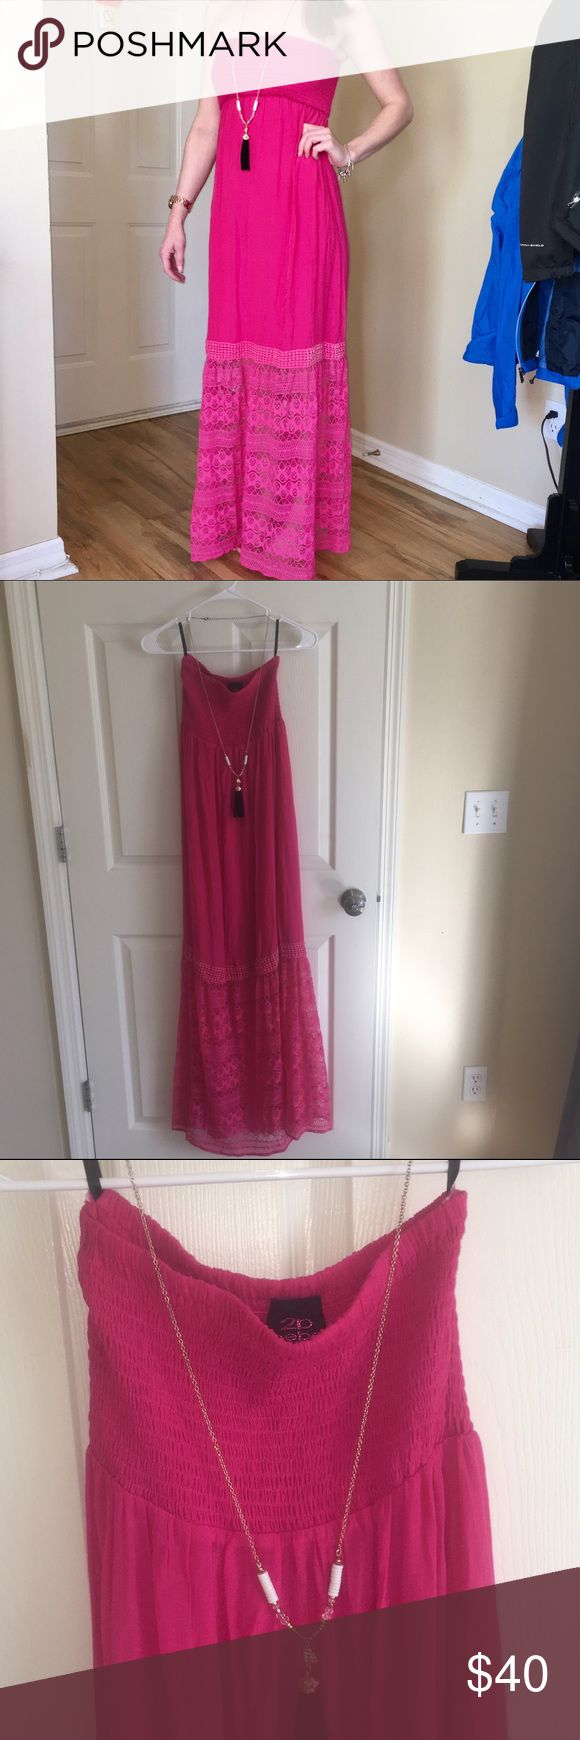 Bebe Magenta Pink Smocked Lace Maxi Dress Small Bebe Magenta Pink Smocked Lace Maxi Dress Small fits 0-4. I'm modeling it at 5'6 and it fits me perfectly. Stretchy smocked top. Lace is sheer from the knee down. Excellent, like new condition. 💐Bundle & save 20%. bebe Dresses Maxi